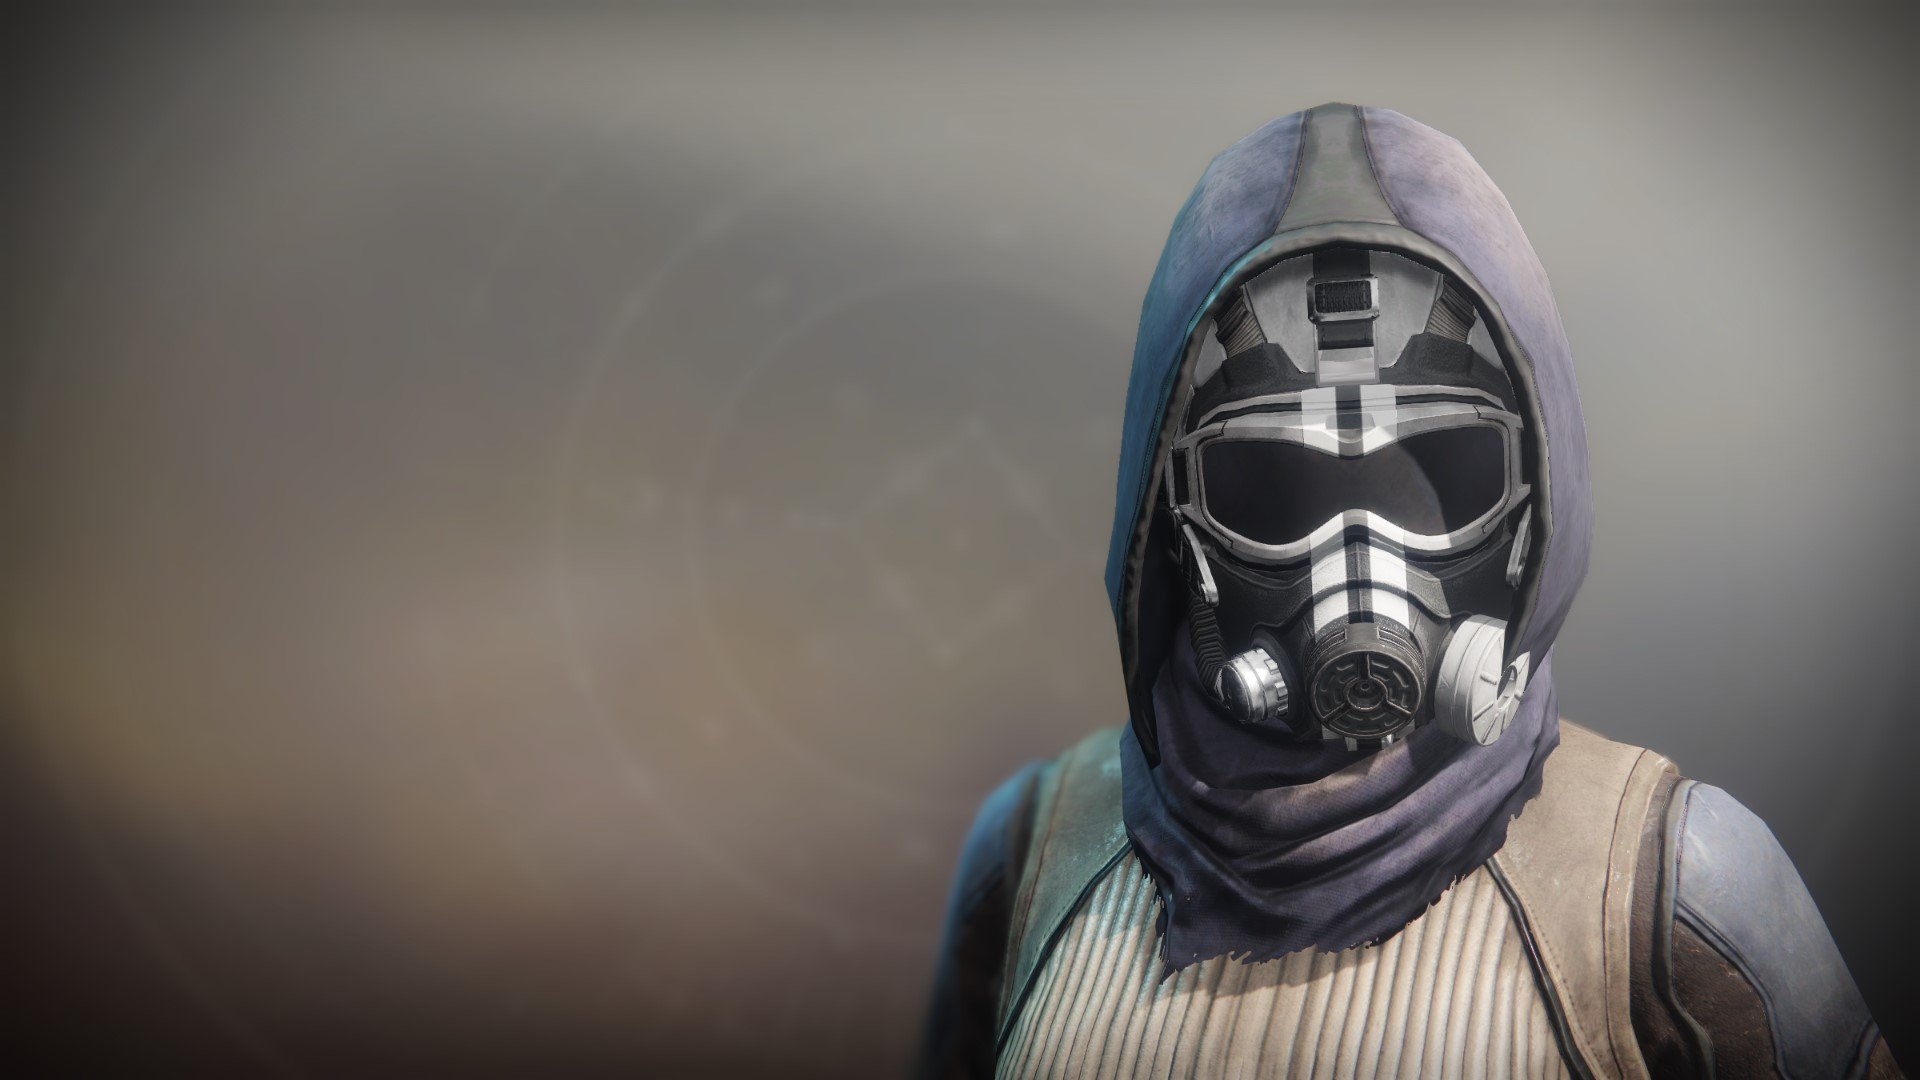 An in-game render of the Anti-Extinction Mask.